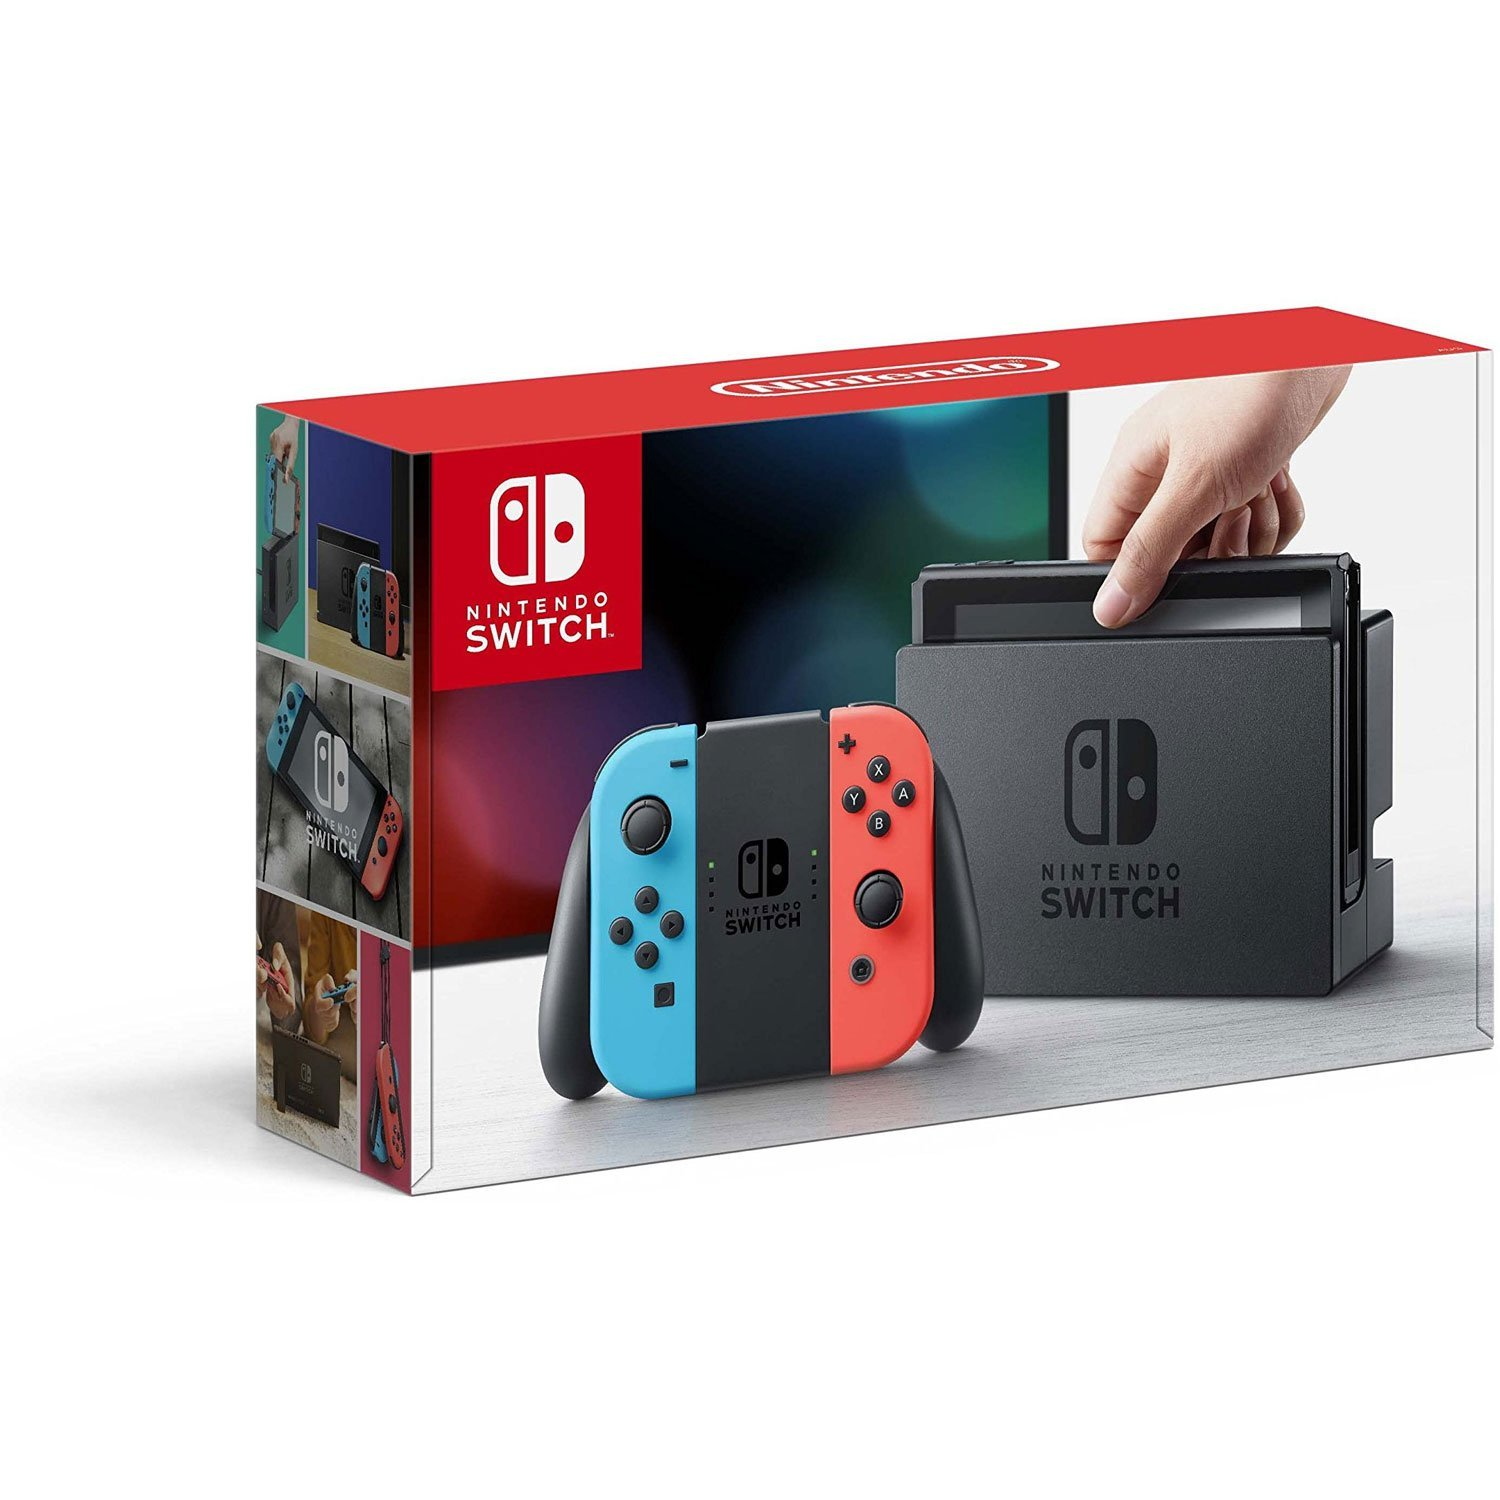 Nintendo Switch - Neon Red and Neon Blue Joy-Con (Renewed)